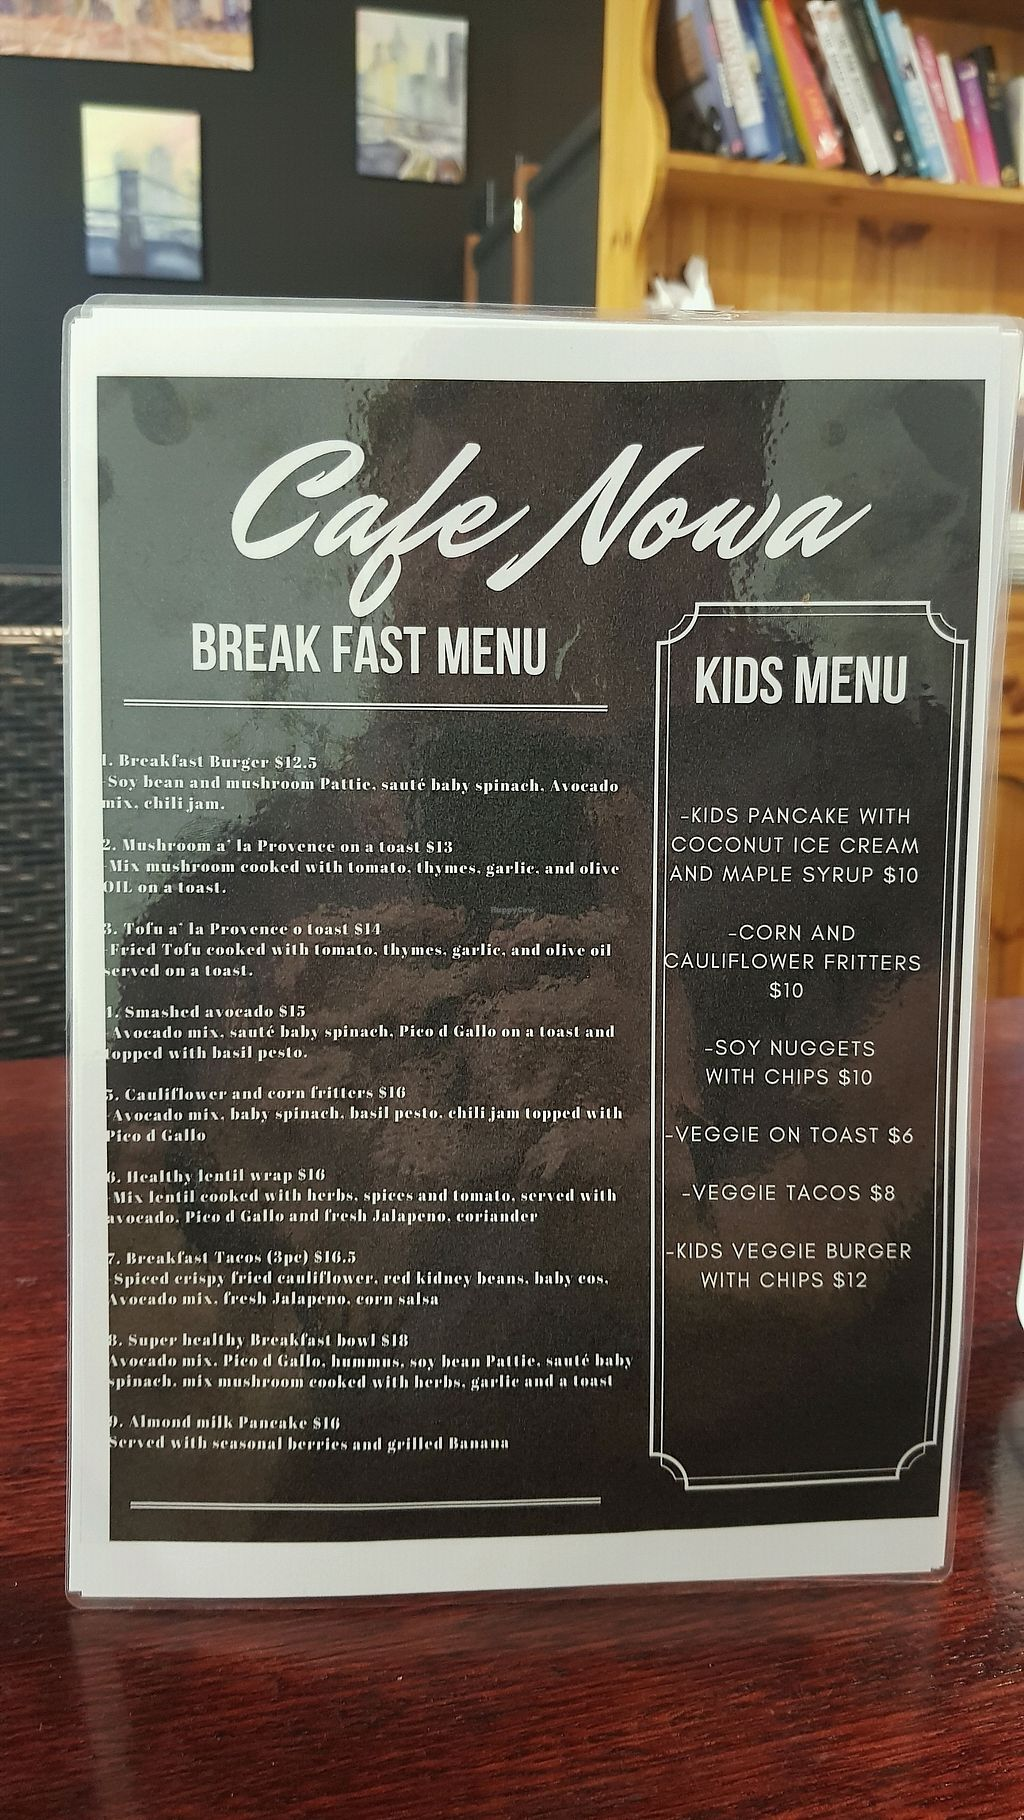 "Photo of Cafe Nowa  by <a href=""/members/profile/JamieGiblett"">JamieGiblett</a> <br/>Breakfast menu <br/> January 10, 2018  - <a href='/contact/abuse/image/109117/344948'>Report</a>"